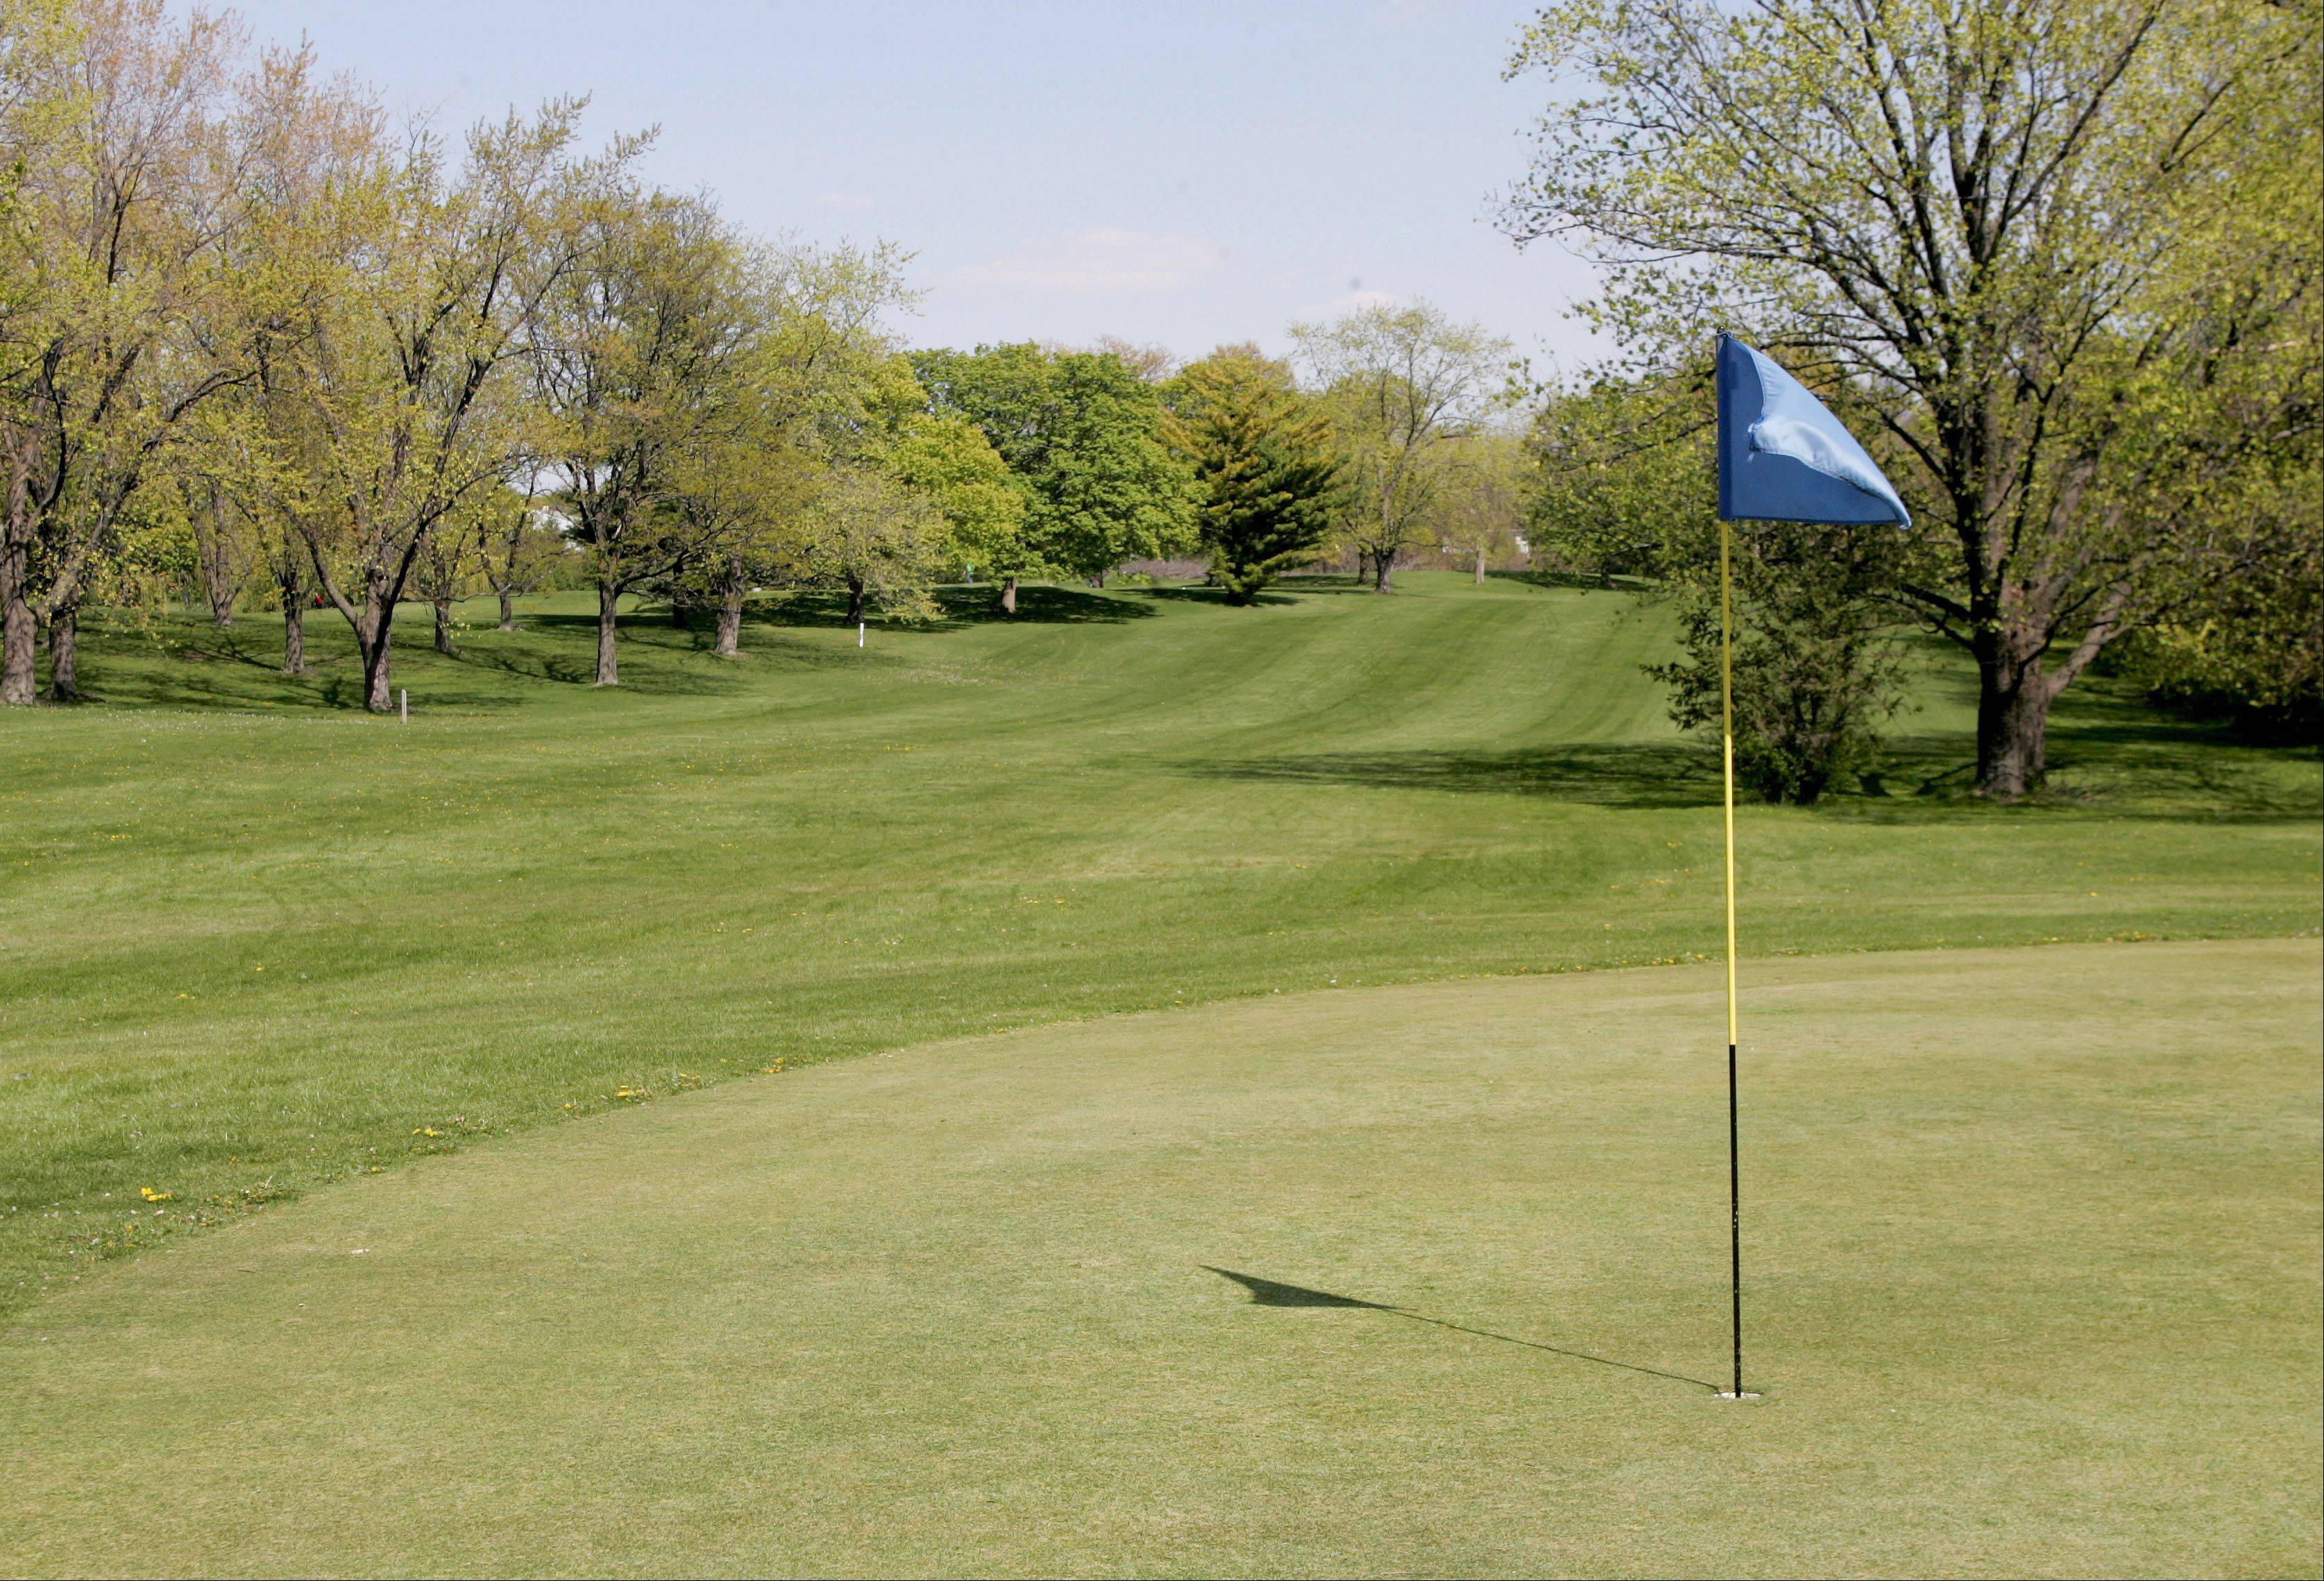 The Lombard village board is expected to vote Thursday to amend its comprehensive plan to clear the way for development of up to 25 percent of the Ken-Loch Golf Links.